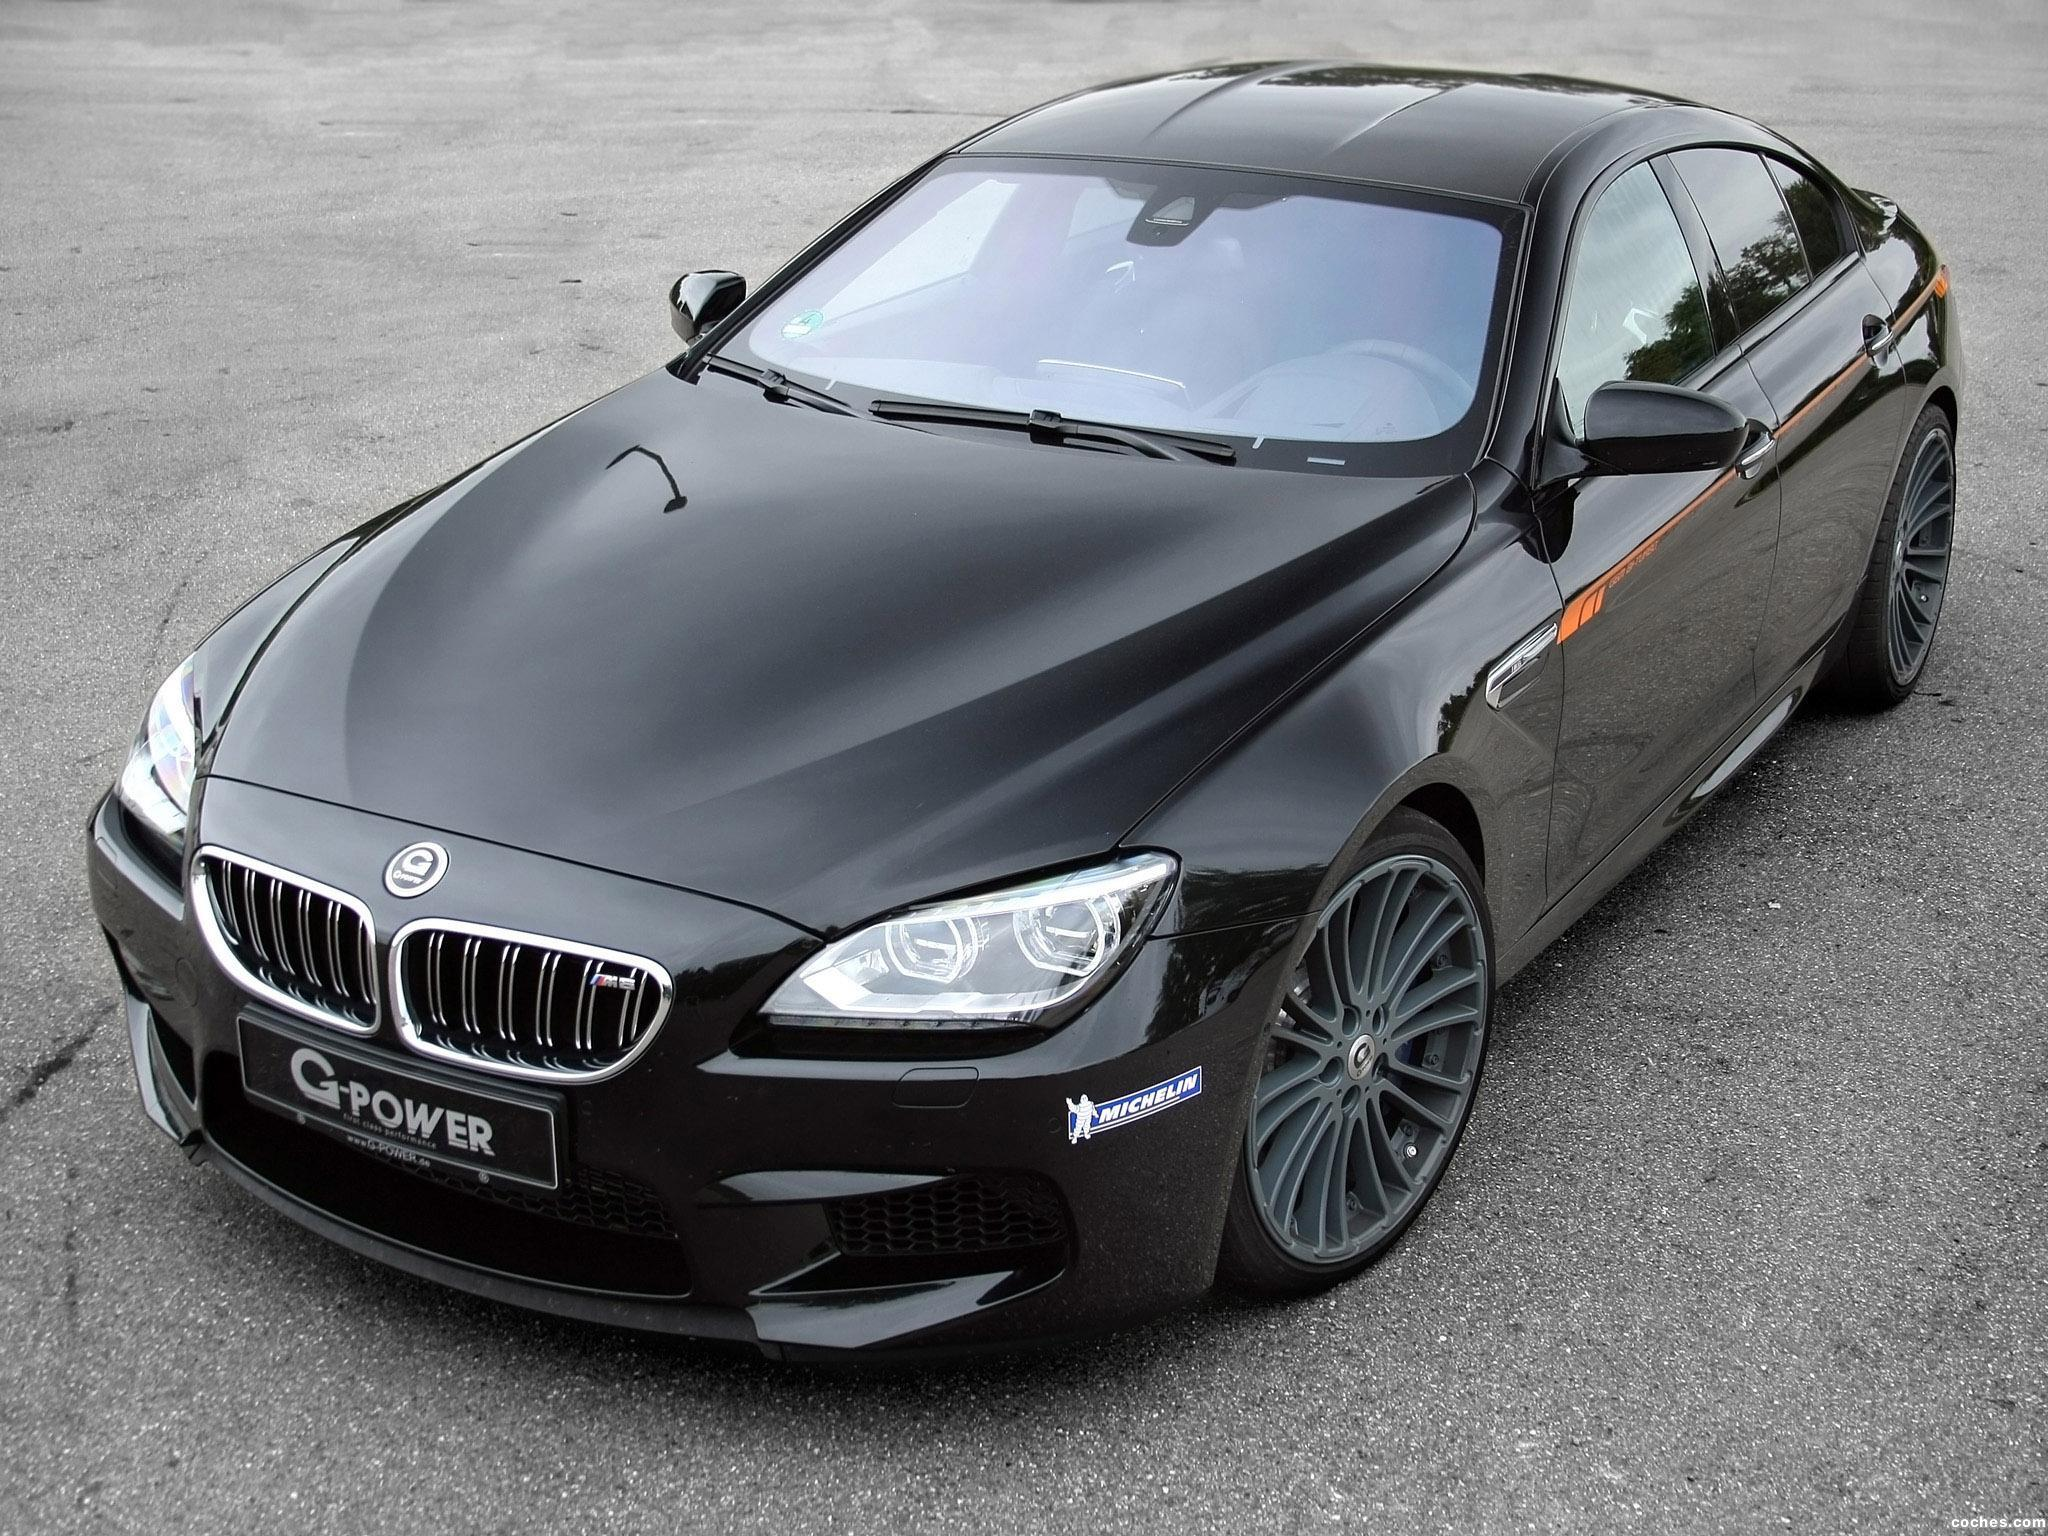 Foto 0 de BMW G Power Serie 6 M6 Gran Coupe 2013